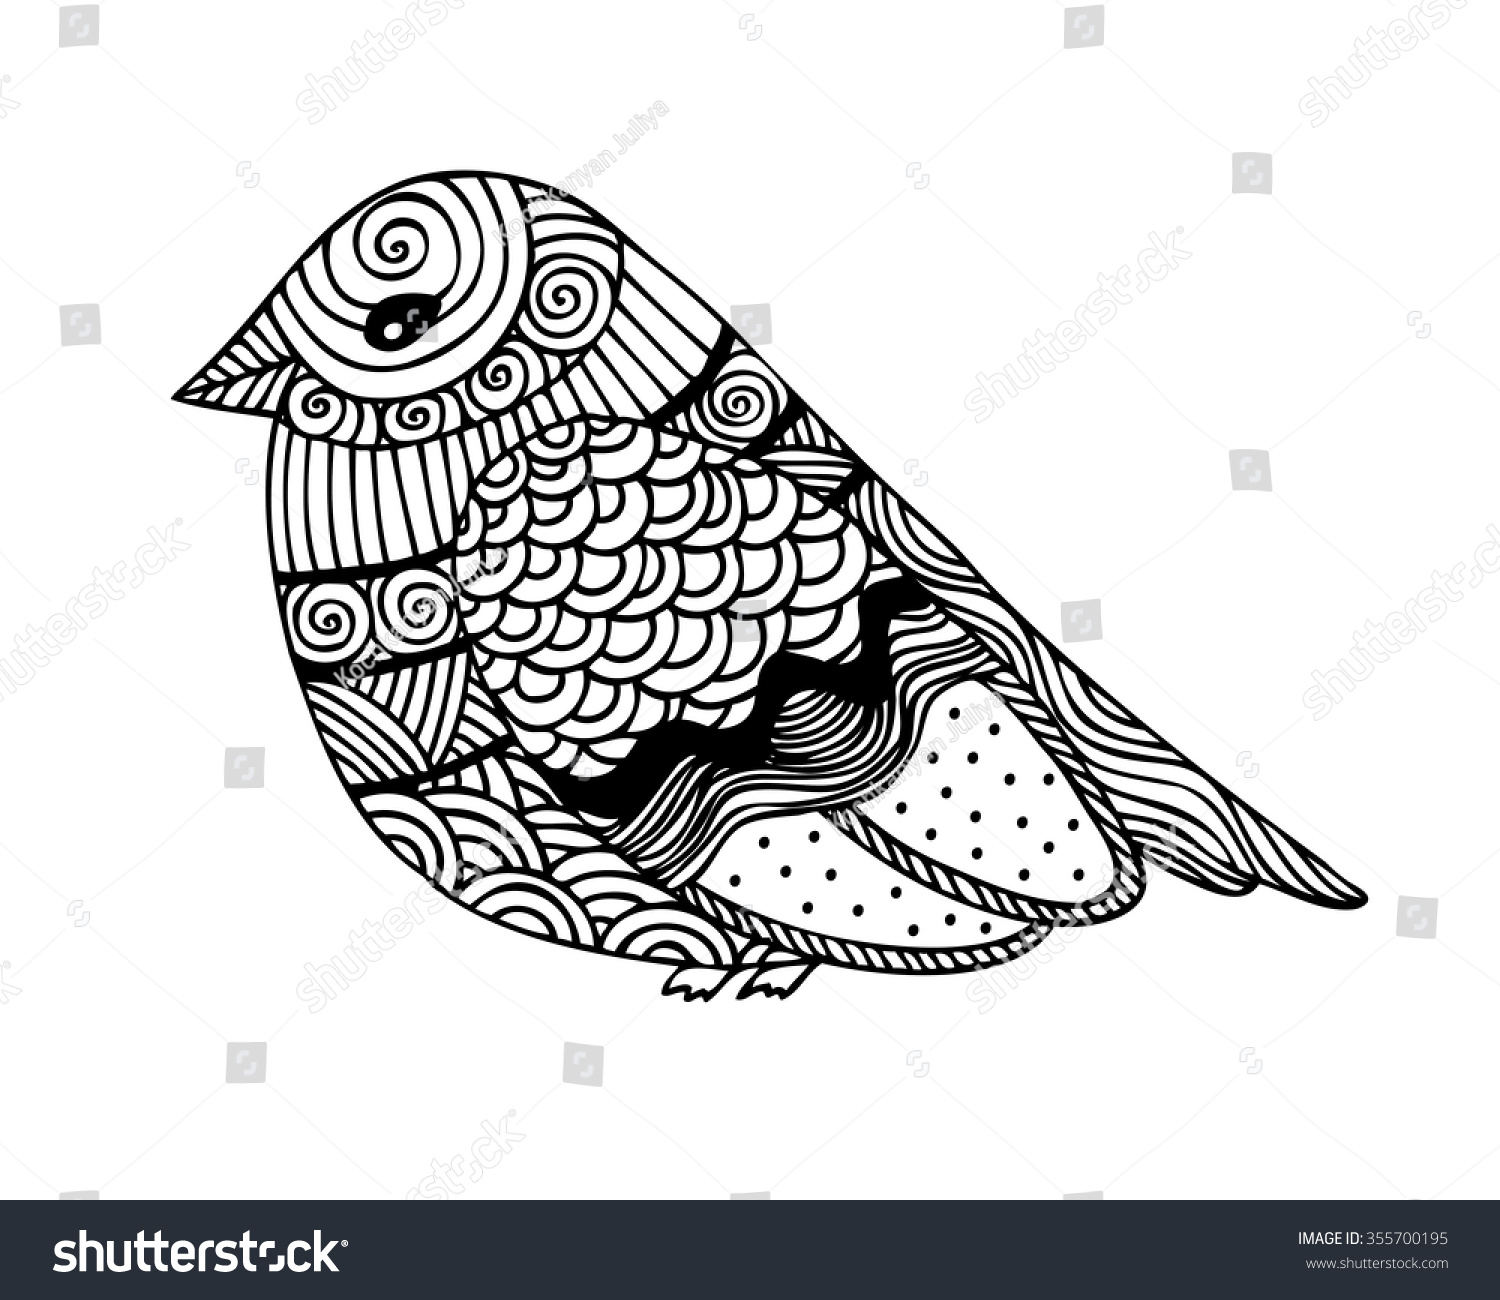 Adult Coloring Book Page Design With Fantastic Bird